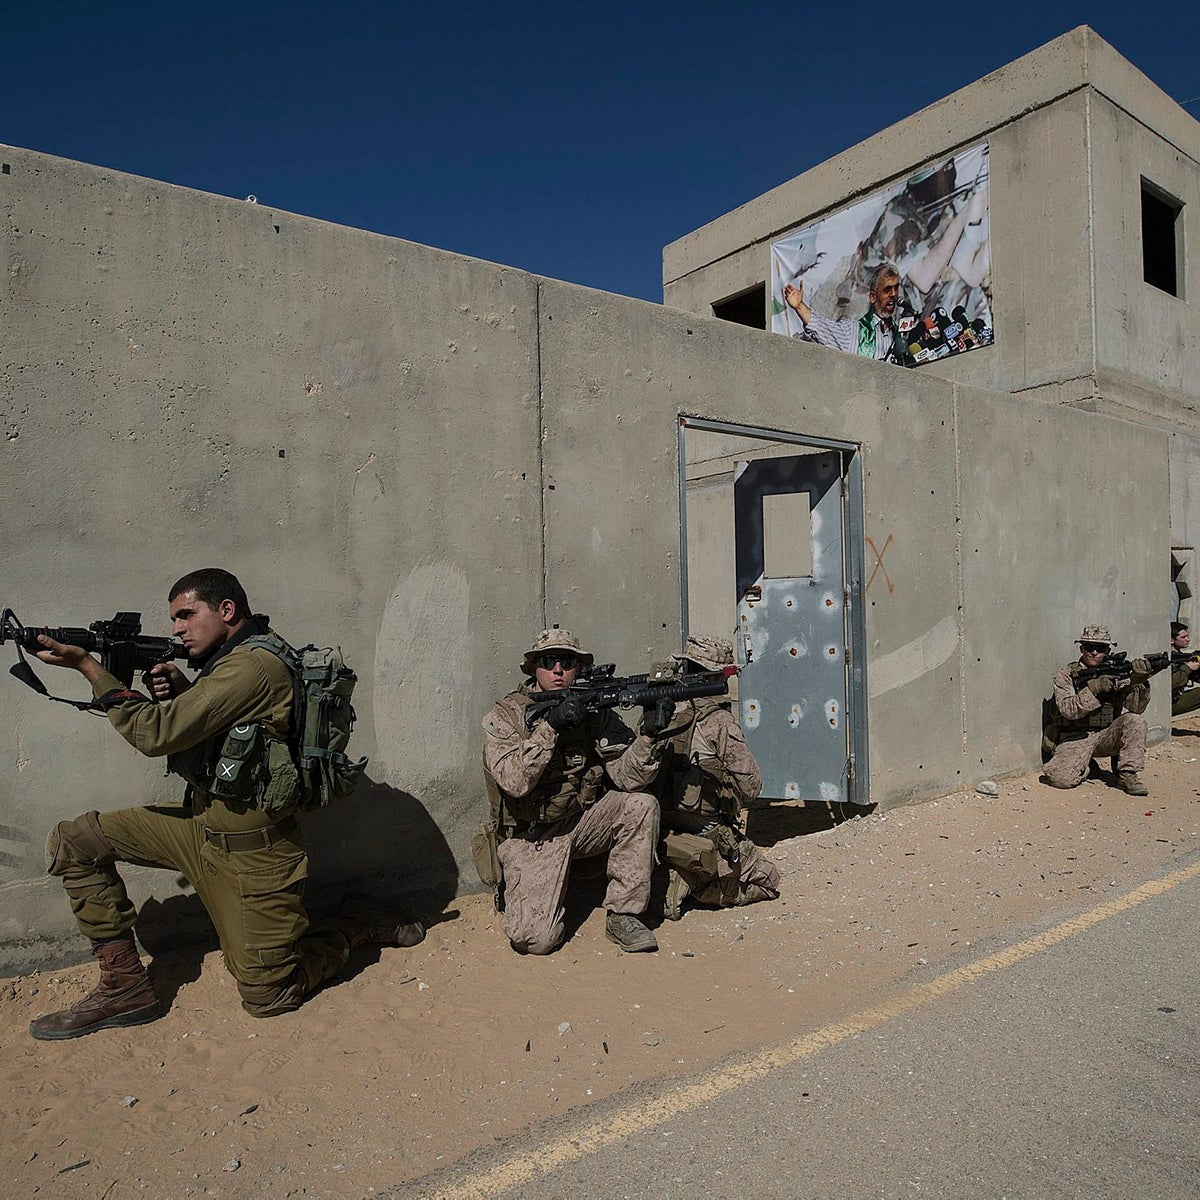 In this Monday, March 12, 2018 photo, U.S. Marines and a Israeli soldiers take part in a joint urban warfare exercise at the Mala base, south of Israel. U.S. and Israeli forces are preparing to one day fight alongside one another to defend Israel against missile attacks from across the region.